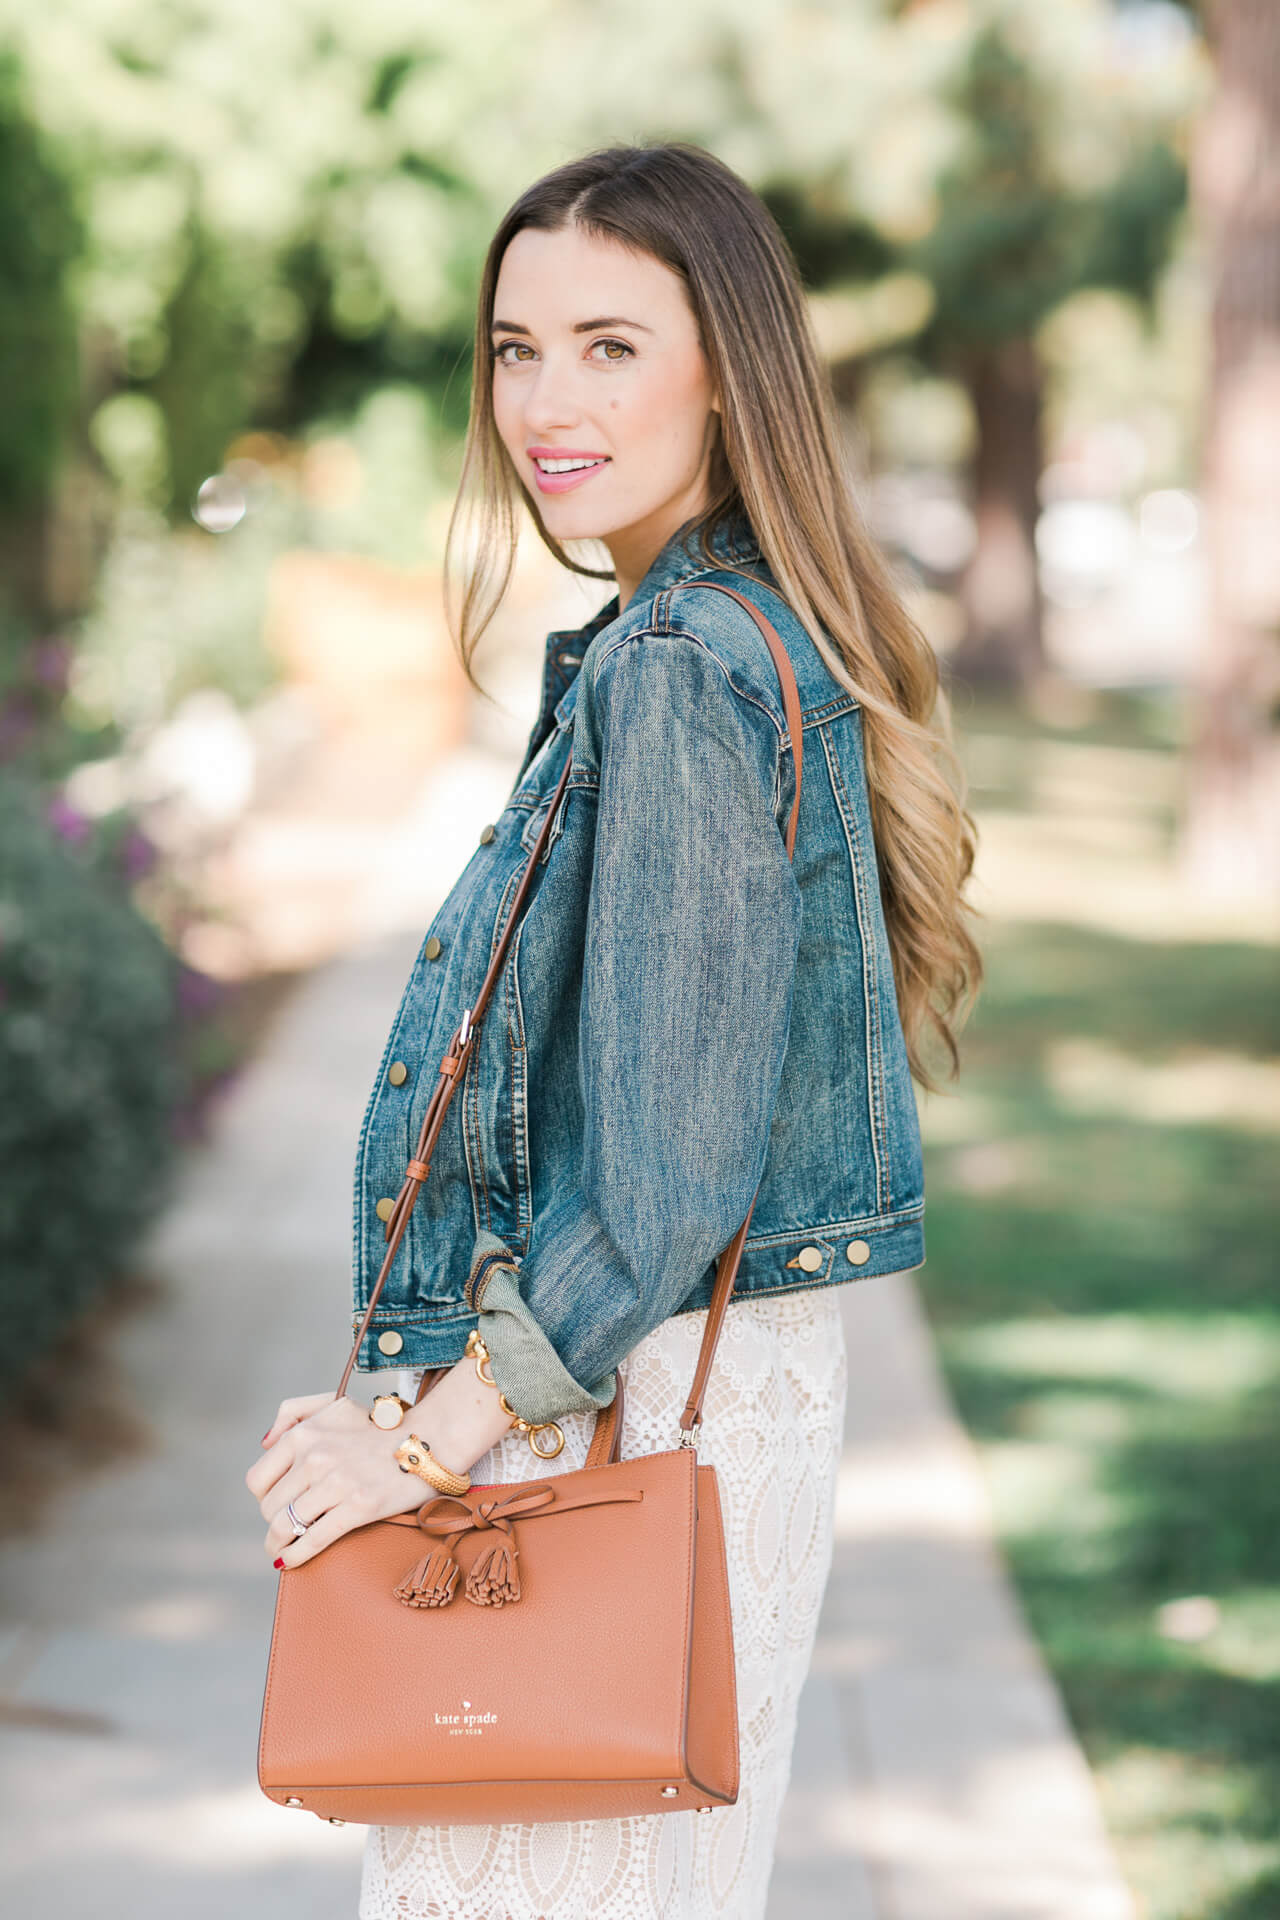 styling a denim jacket for spring